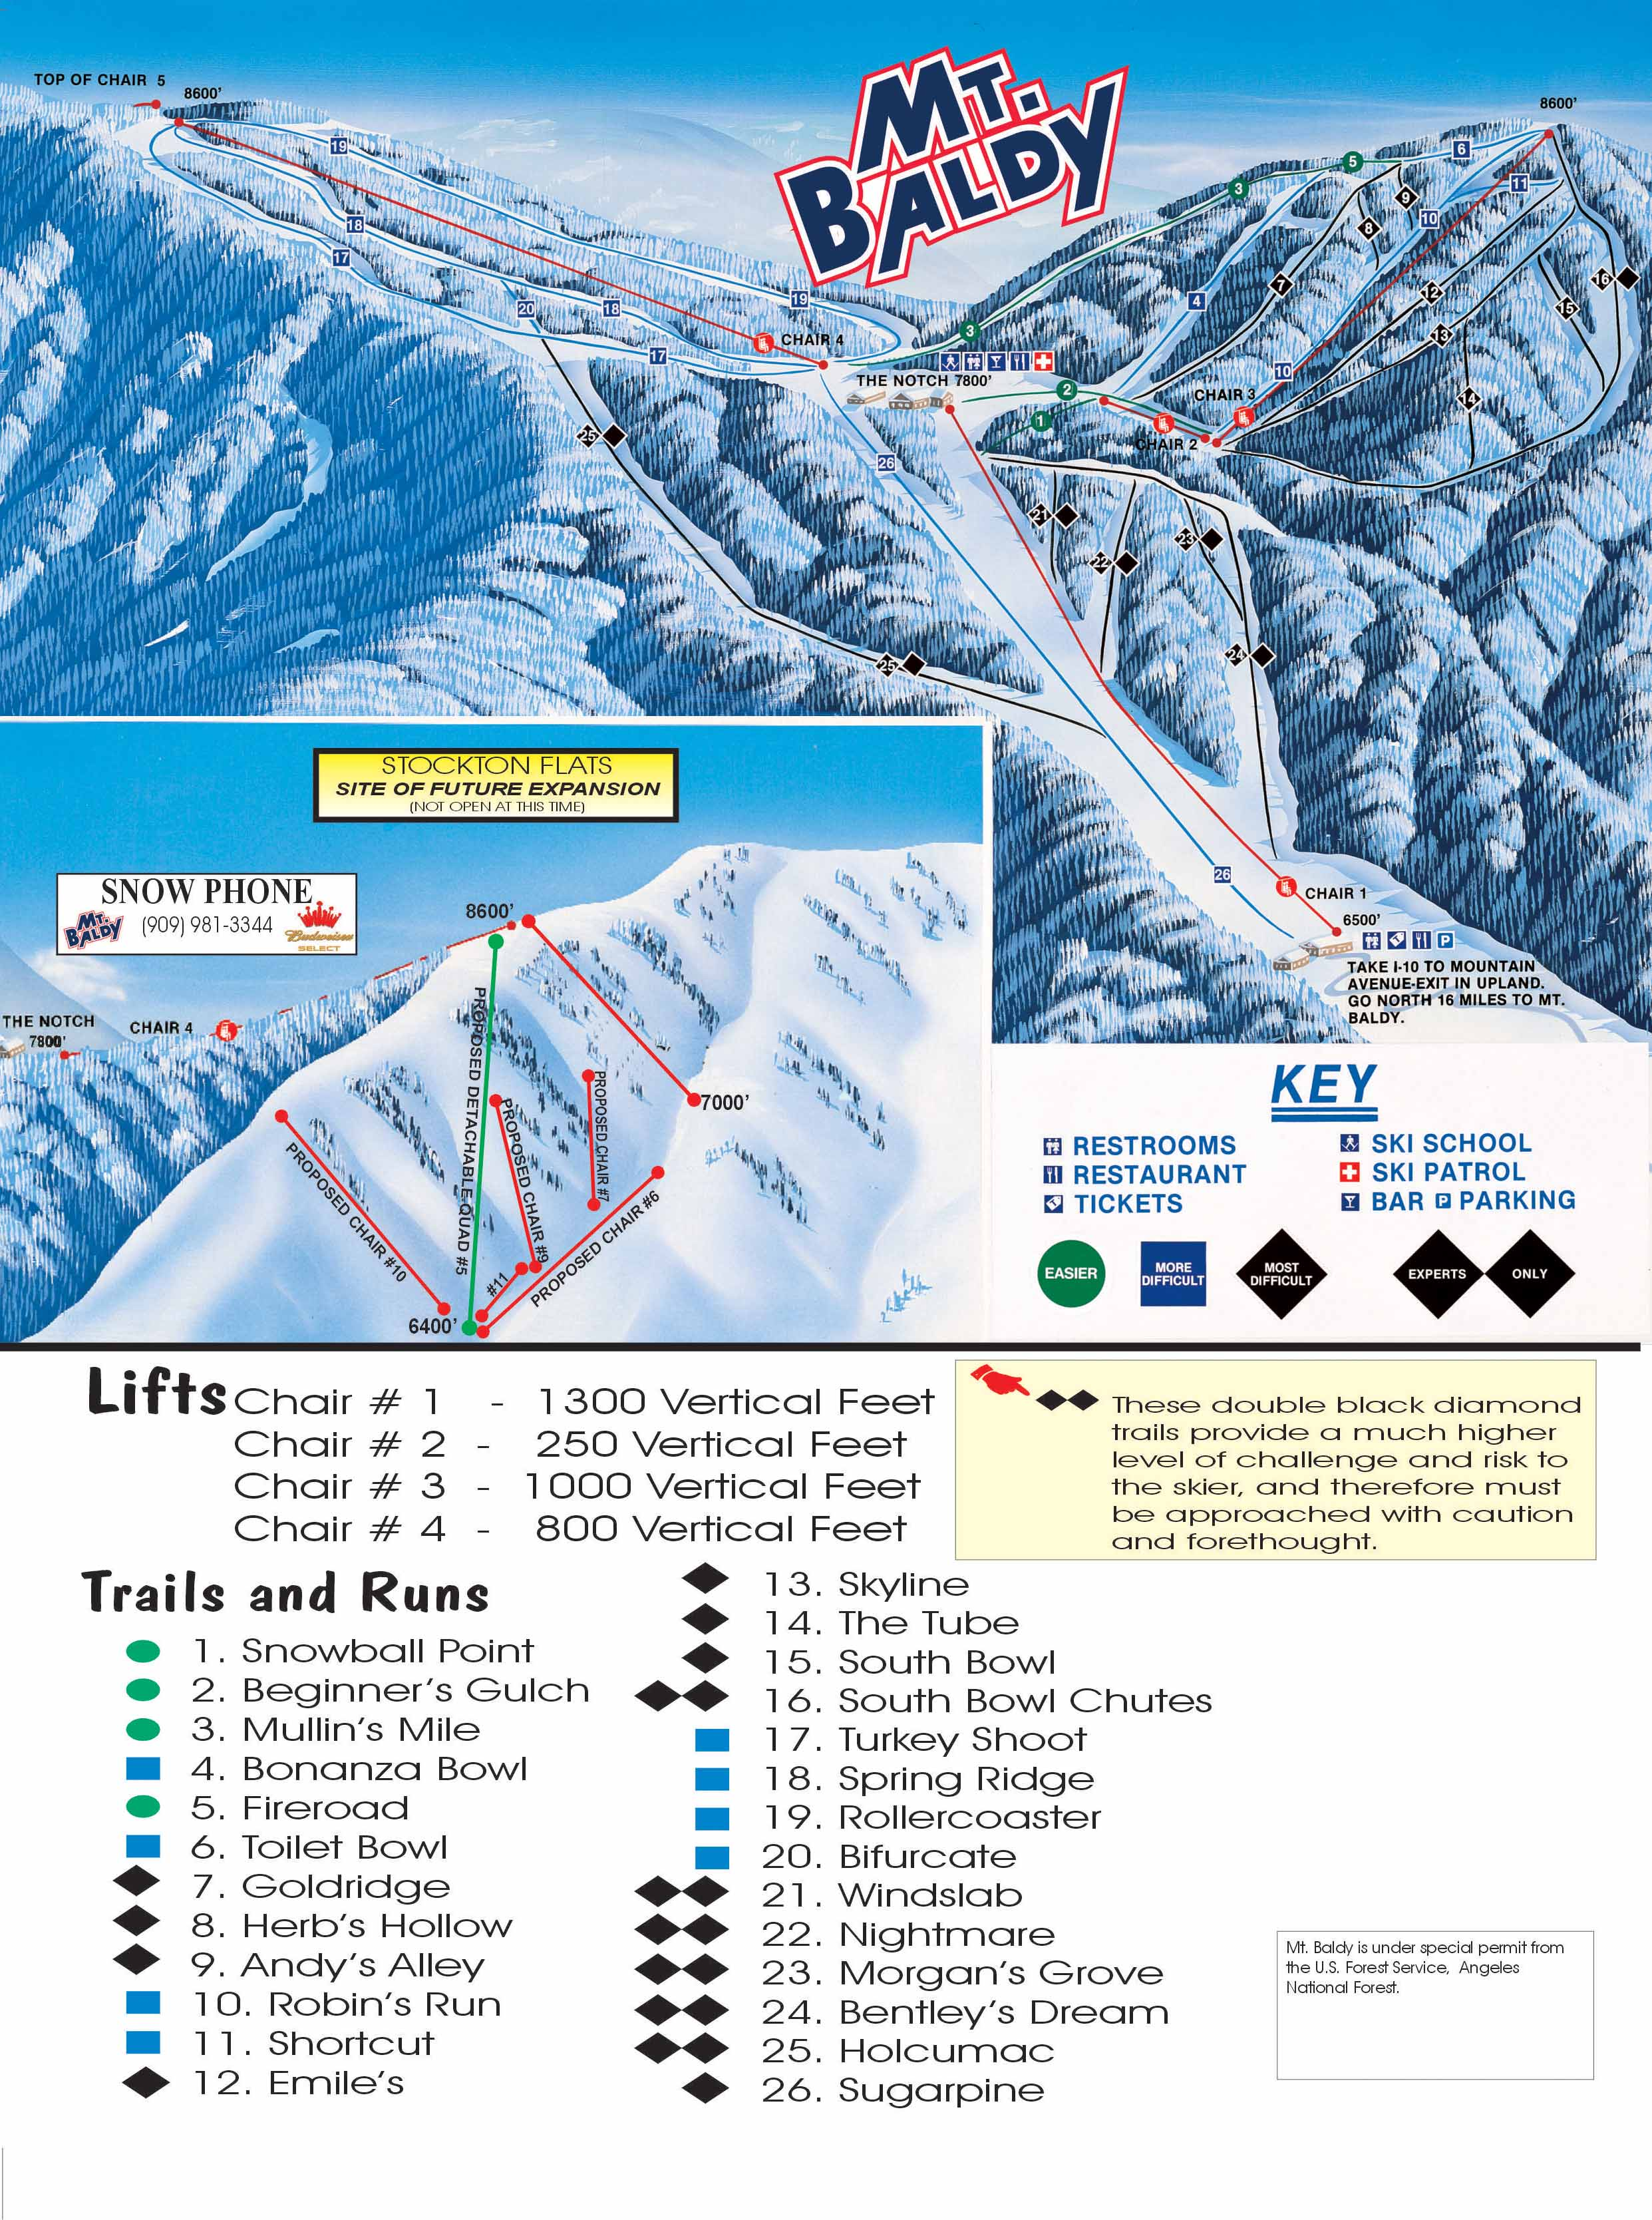 Mt. Baldy Ski Lifts - SkiMap.org on montana resort towns, mt. snow trail map, montana average temperatures by month, mt. rose ski area map, great divide ski map, montana ski areas, montana hotels map, montana ski towns, new york city tourist attractions map, mt. baldy ski trail map, montana whitefish mountain resort, tremblant canada map, red lodge ski resort map, mt spokane ski map, montana road conditions map webcams, red lodge trail map, resorts in montana map, montana snotel data, montana scenic drives map, montana hiking map,